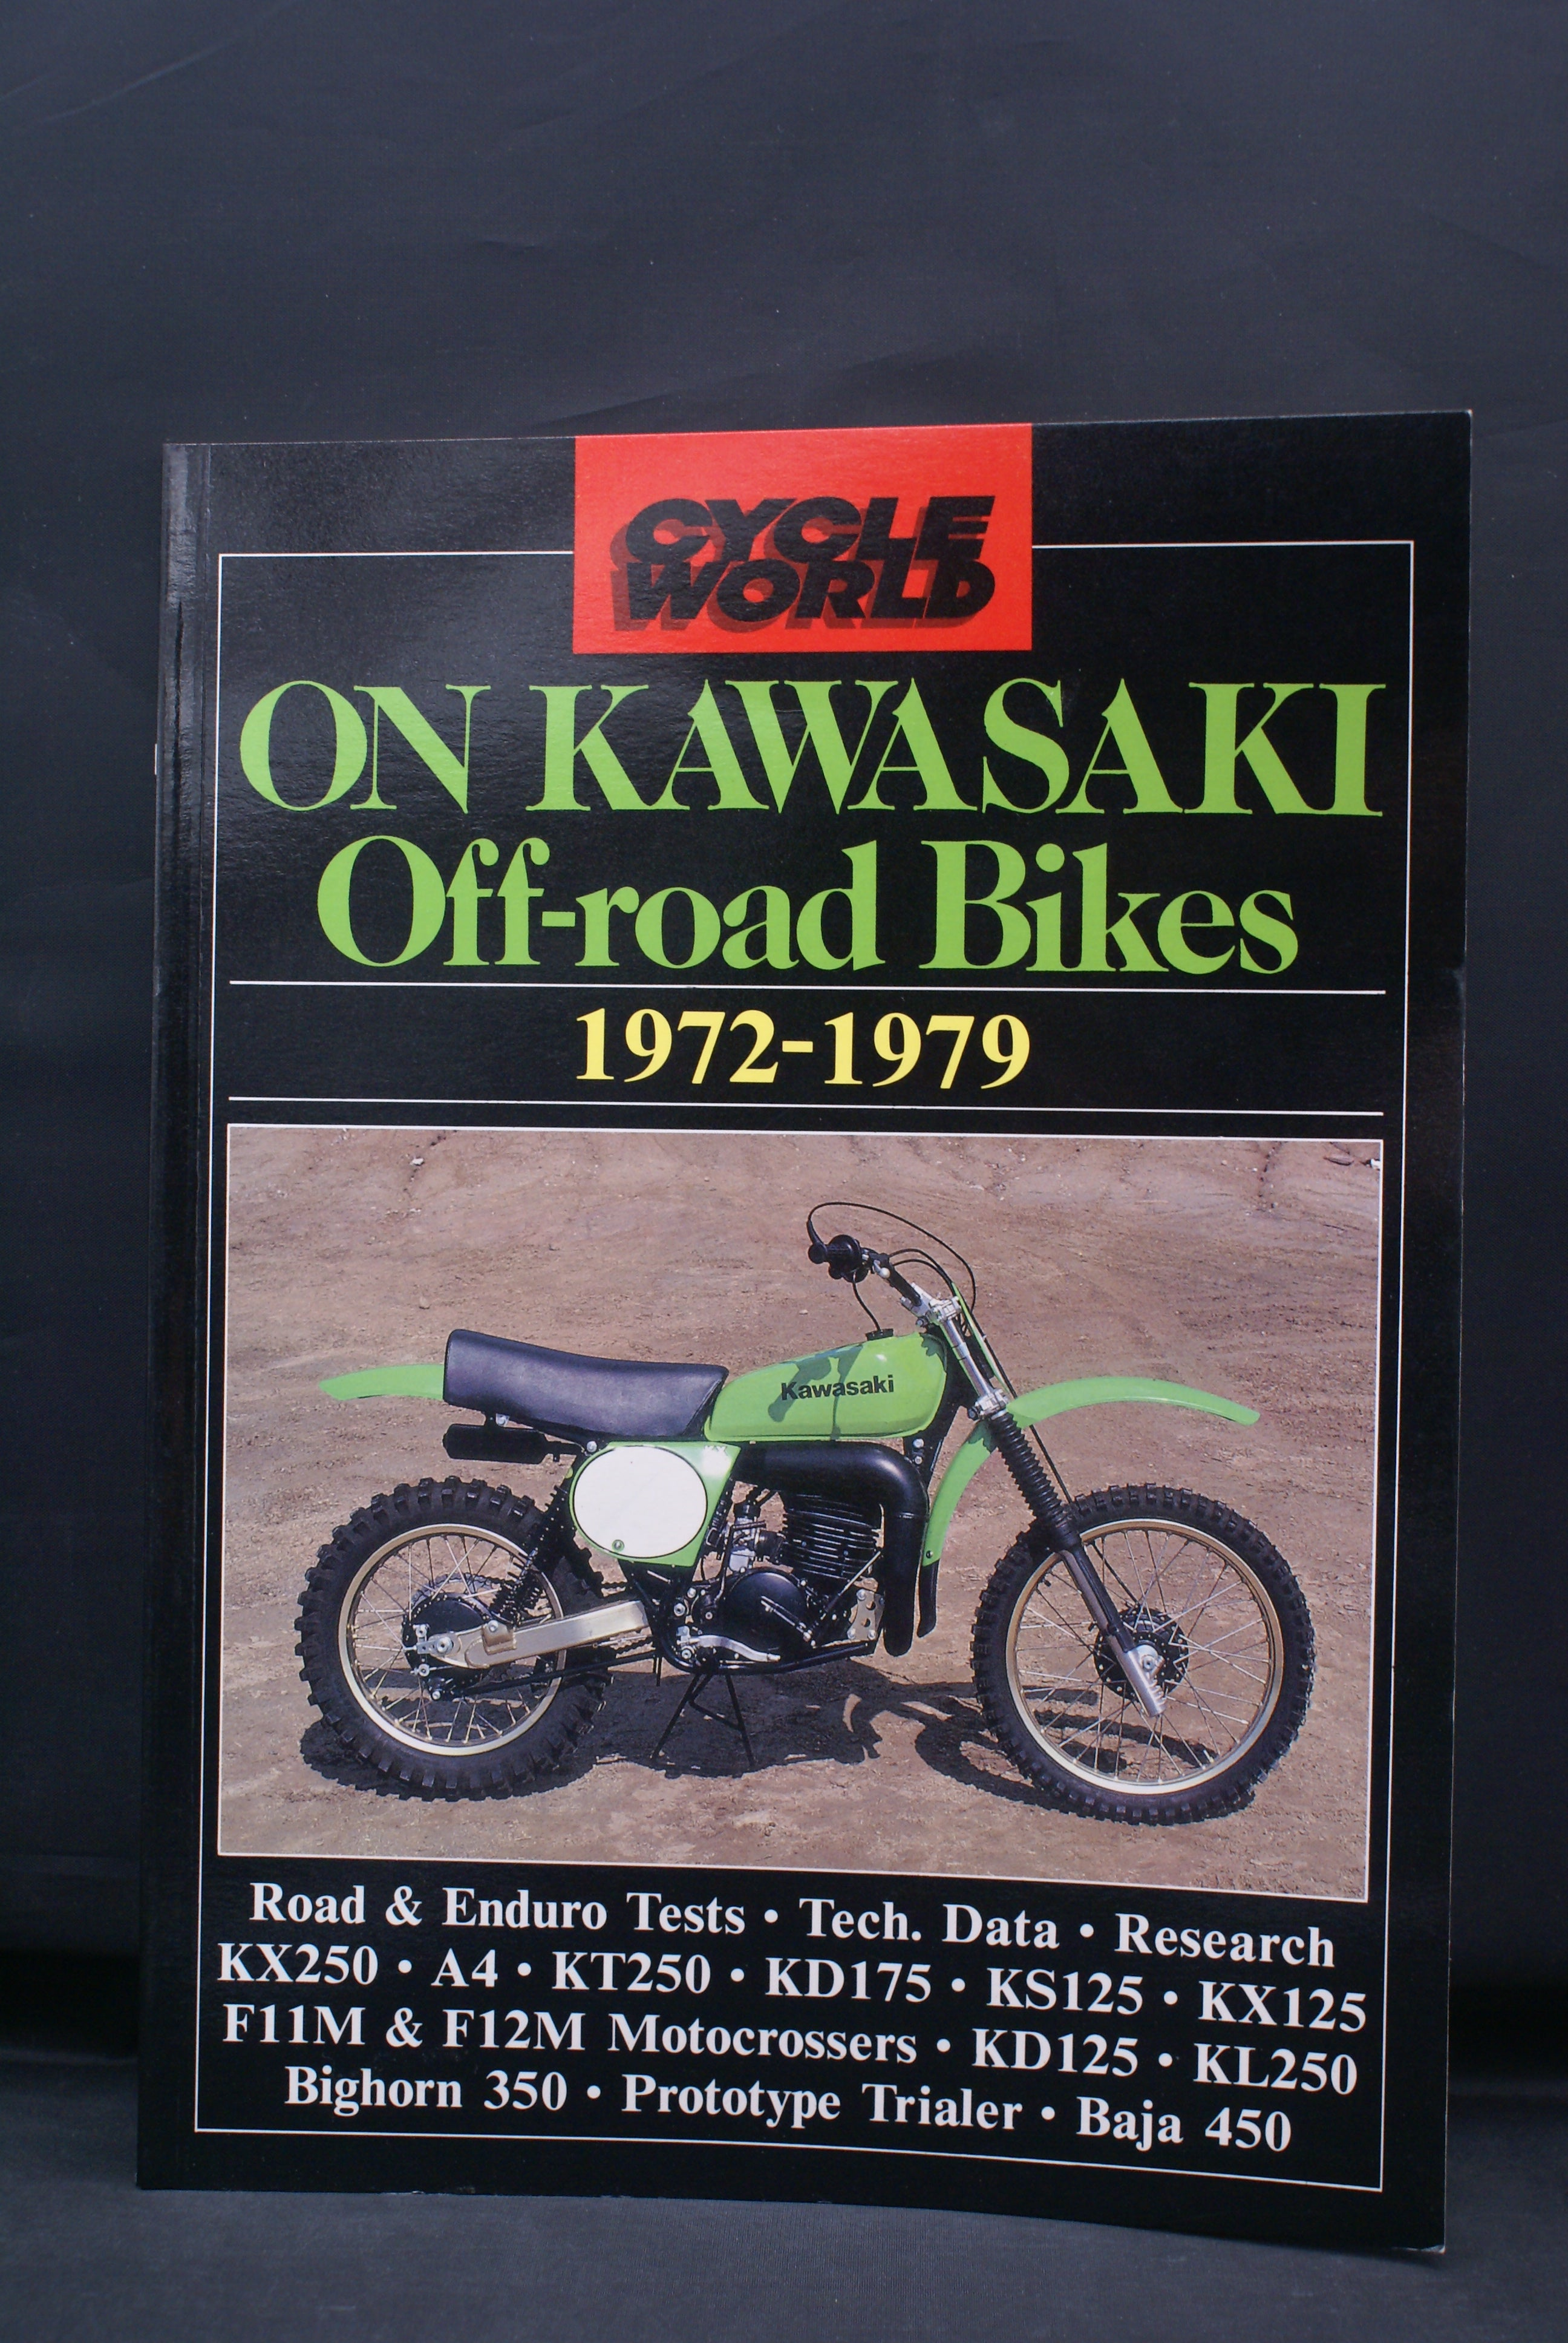 Kawasaki Off-Road Bikes